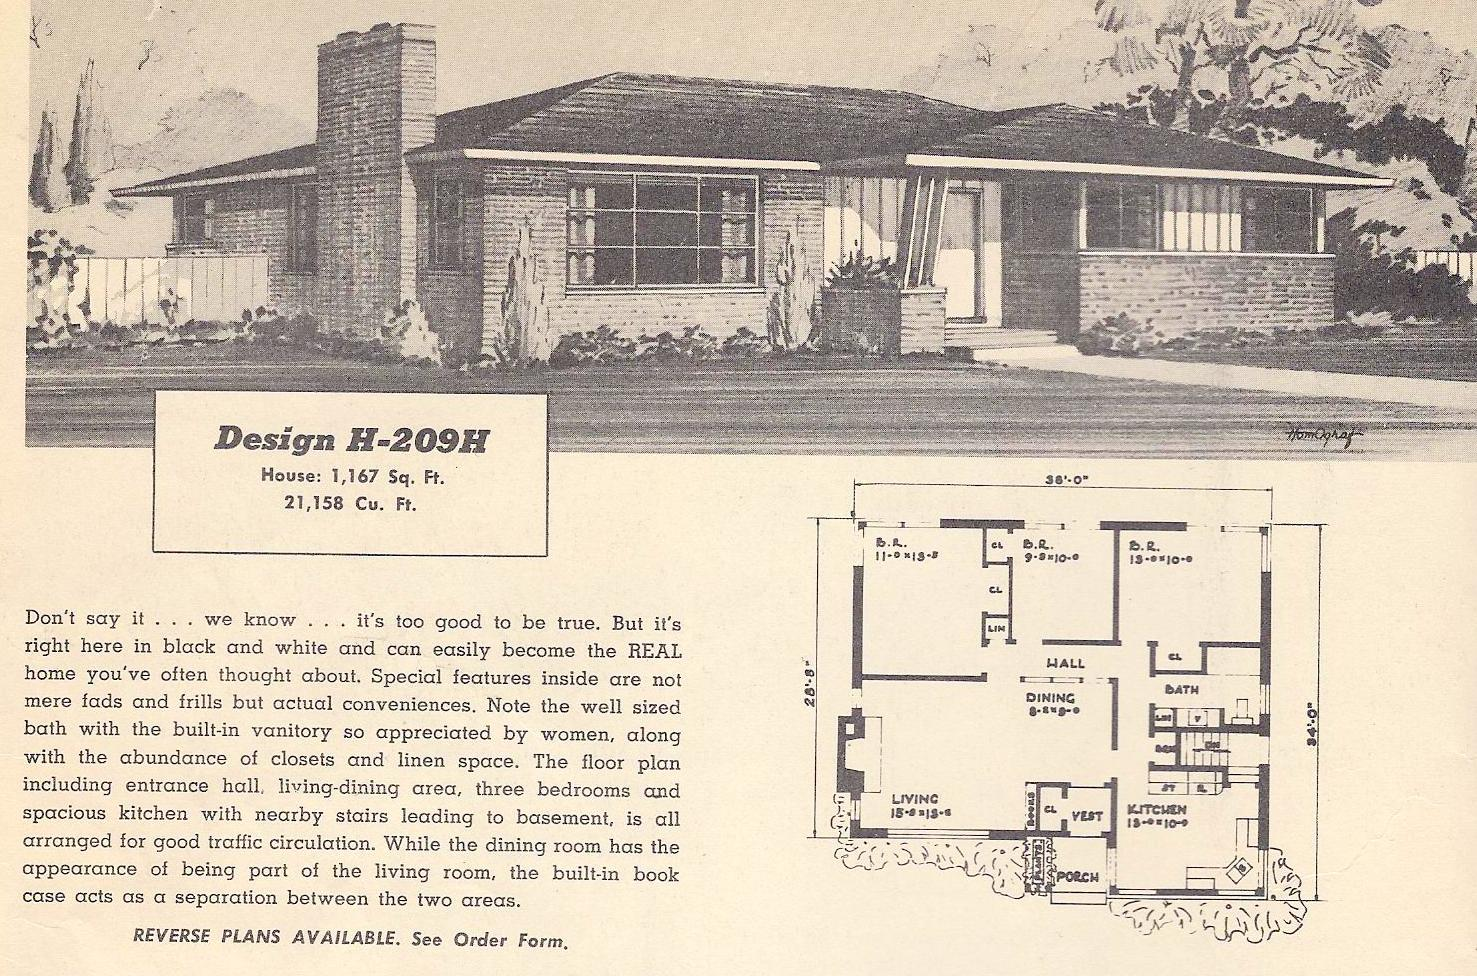 vintage house plans 209h?w=1200 vintage house plans 209h antique alter ego,House Plans 1950s